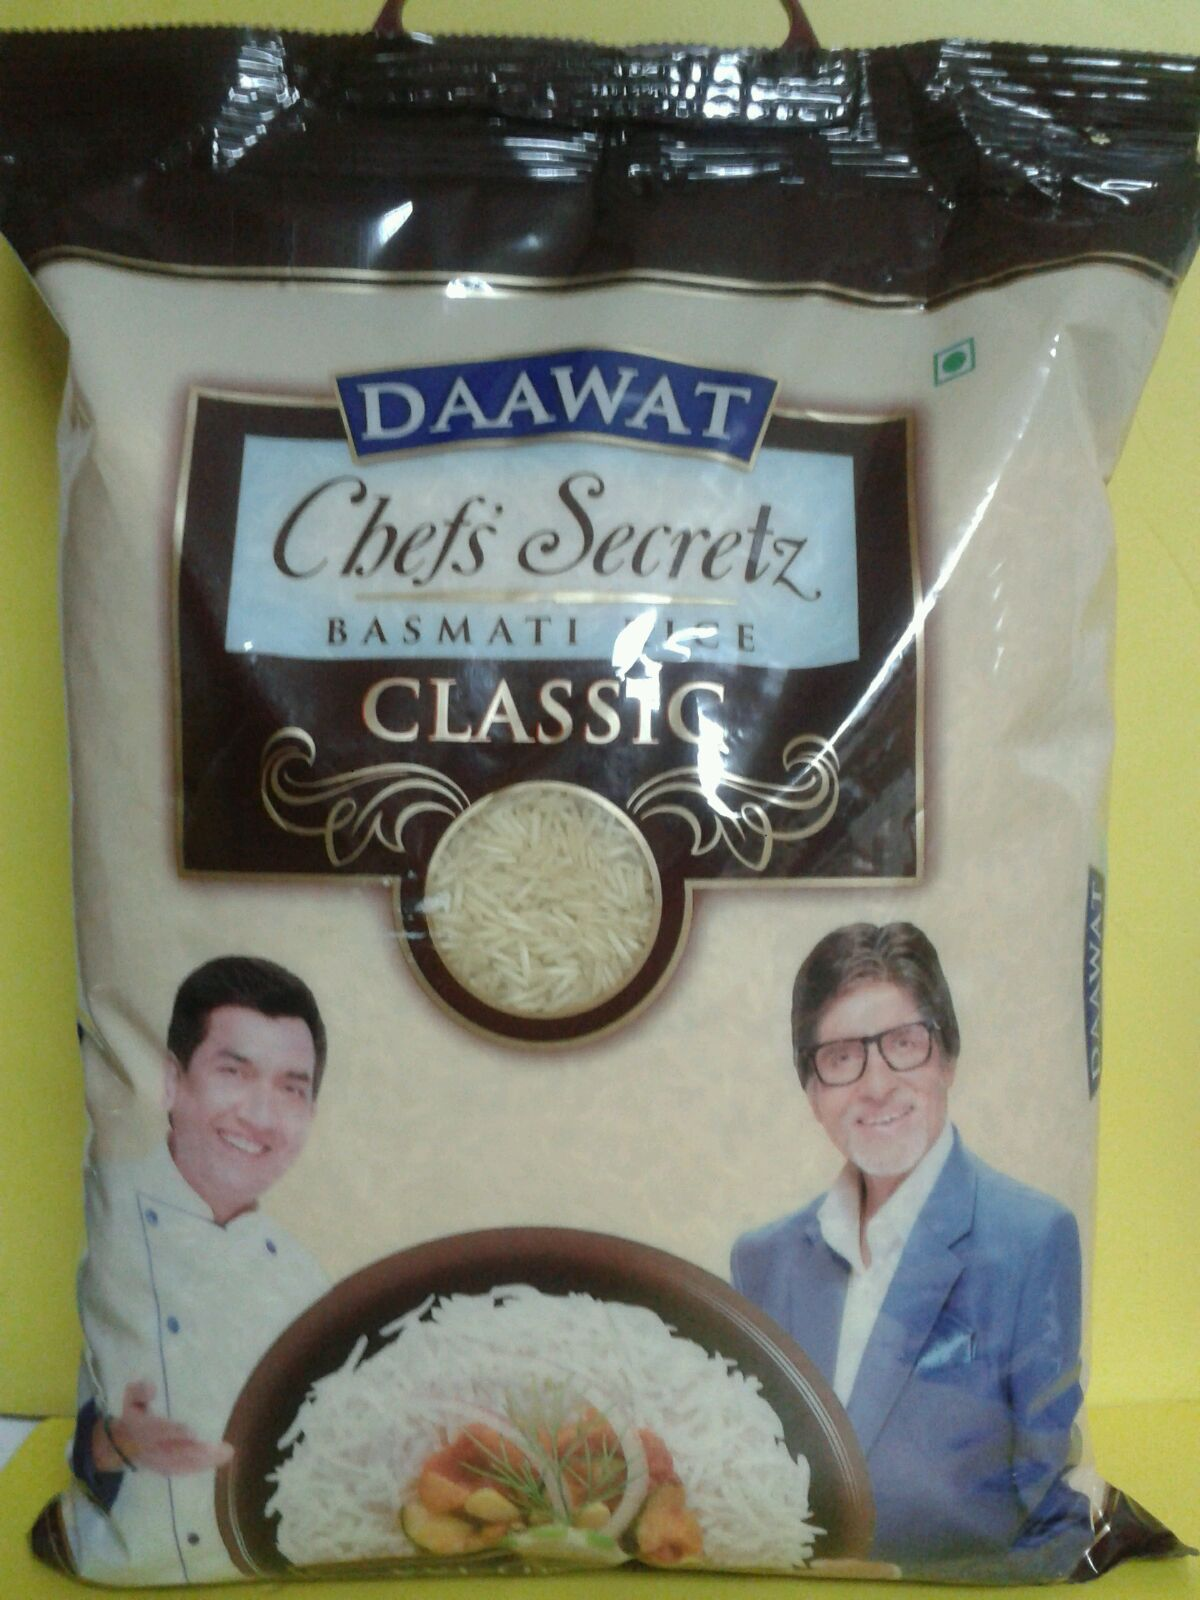 BASMATI RICE, DAAWAT CHEF'S SECRET CLASSIC - 5KG [ A17 ] - $85 00